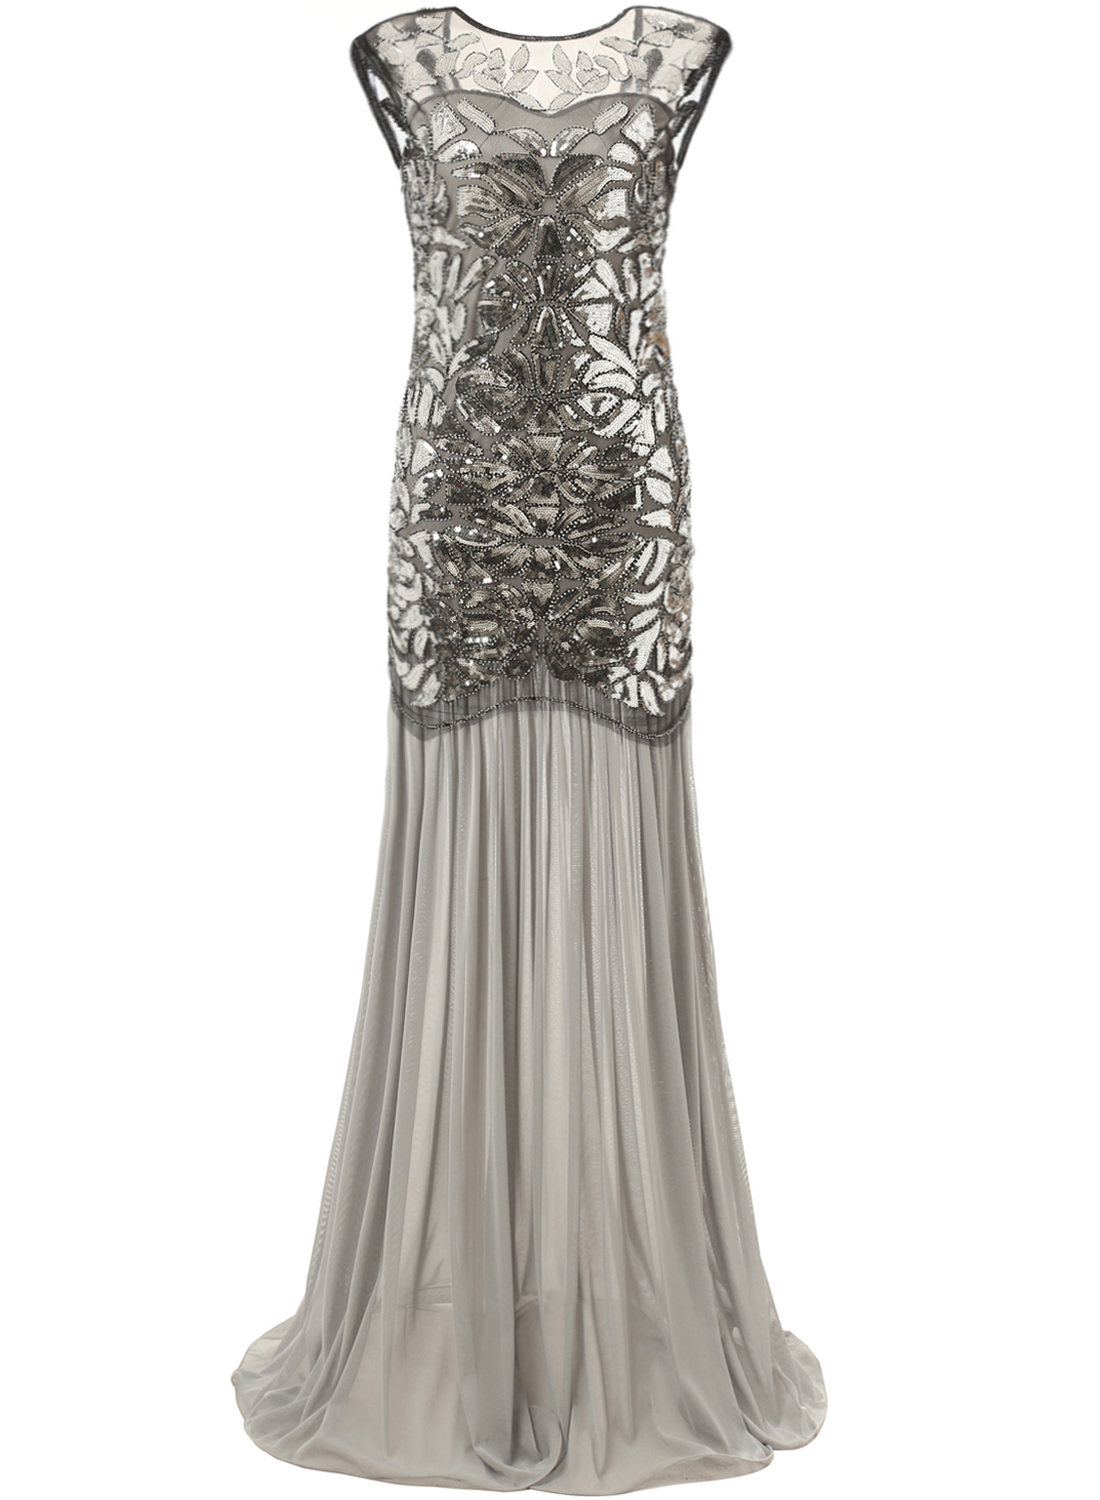 Mermaid Vintage 20s Style Gatsby Flapper Gray Long Cocktail Prom Dress, Grey